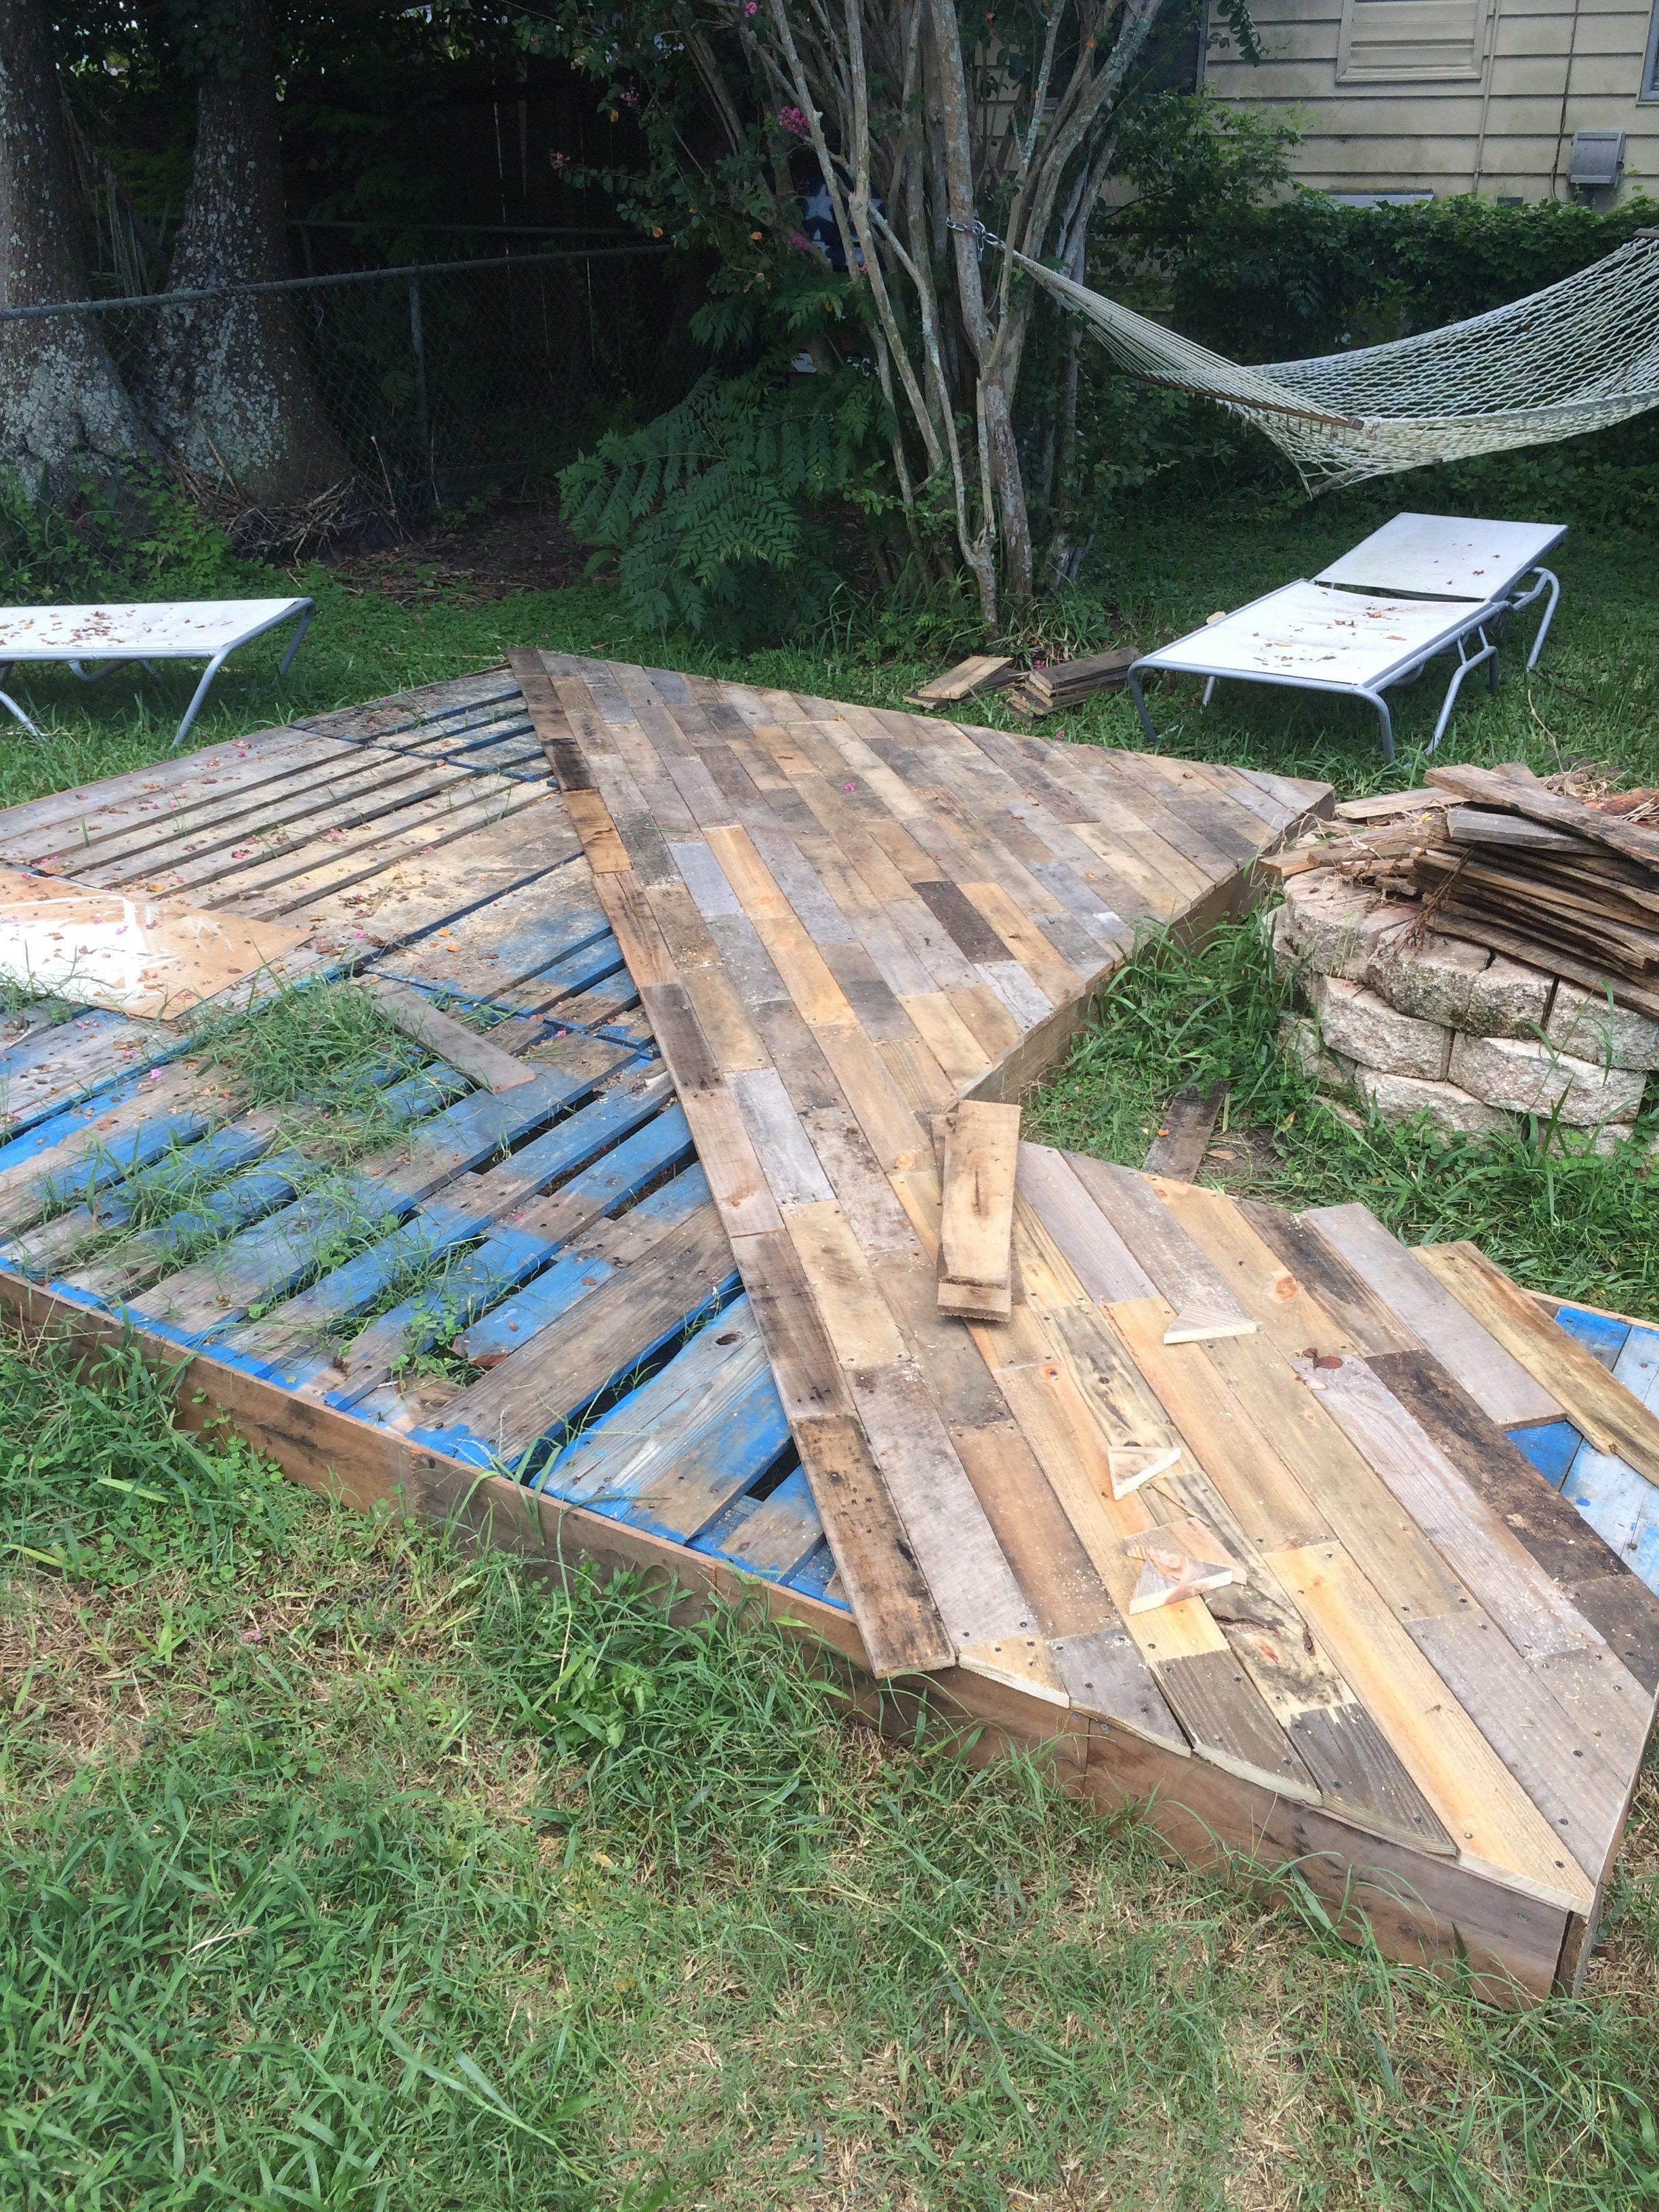 Patio Deck Out Of 25 Wooden Pallets • 1001 Pallets